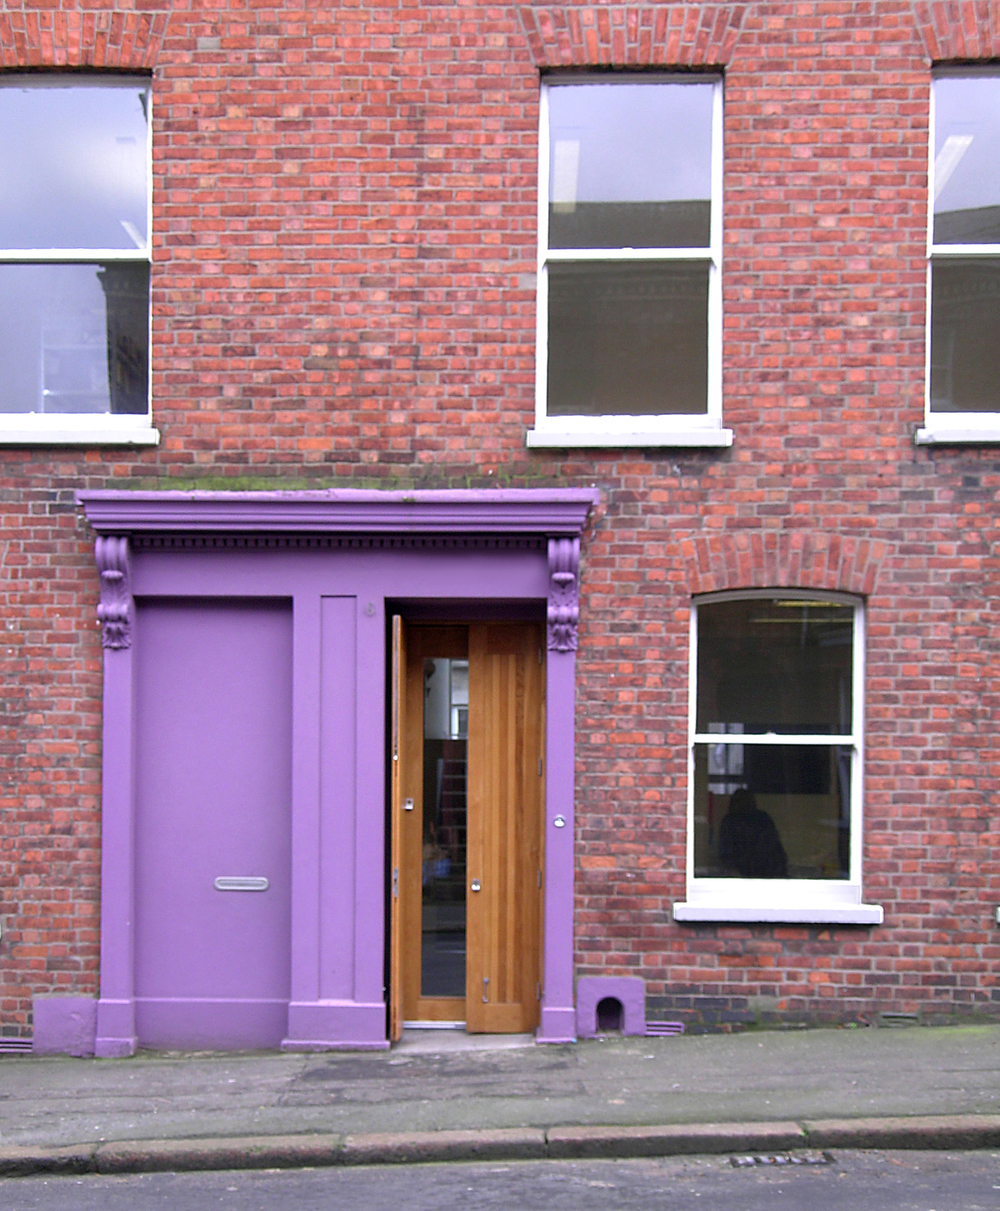 Architects Office Refurbishment   Belfast  2003 saw the conversion and upgrading of three Victorian terraced dwellings to create our new offices